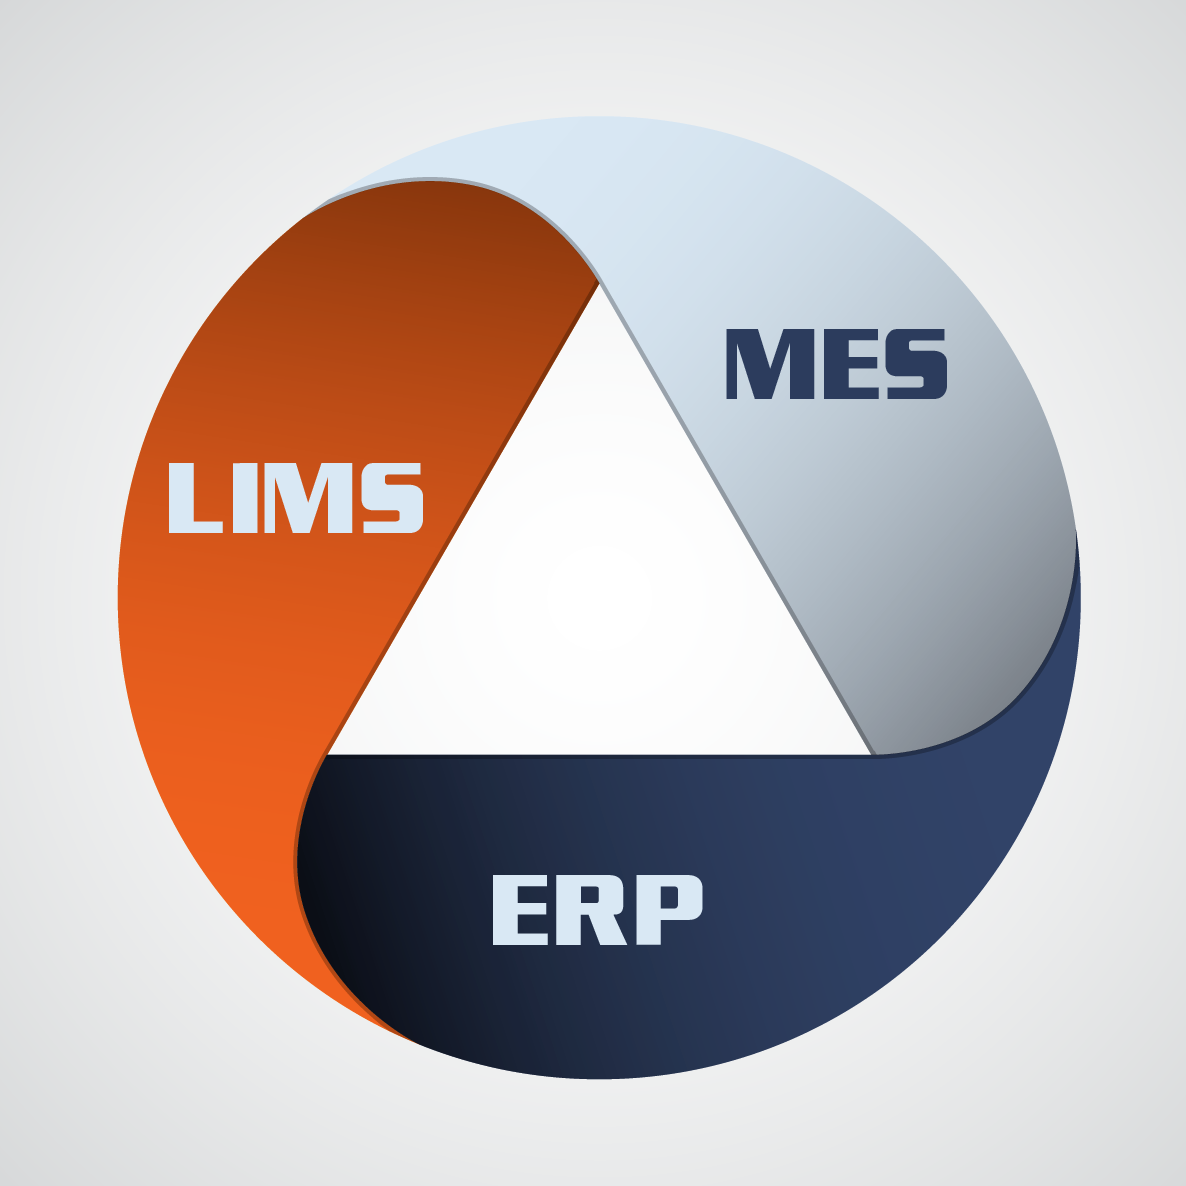 LIMS_ERP_MES_2 2.png